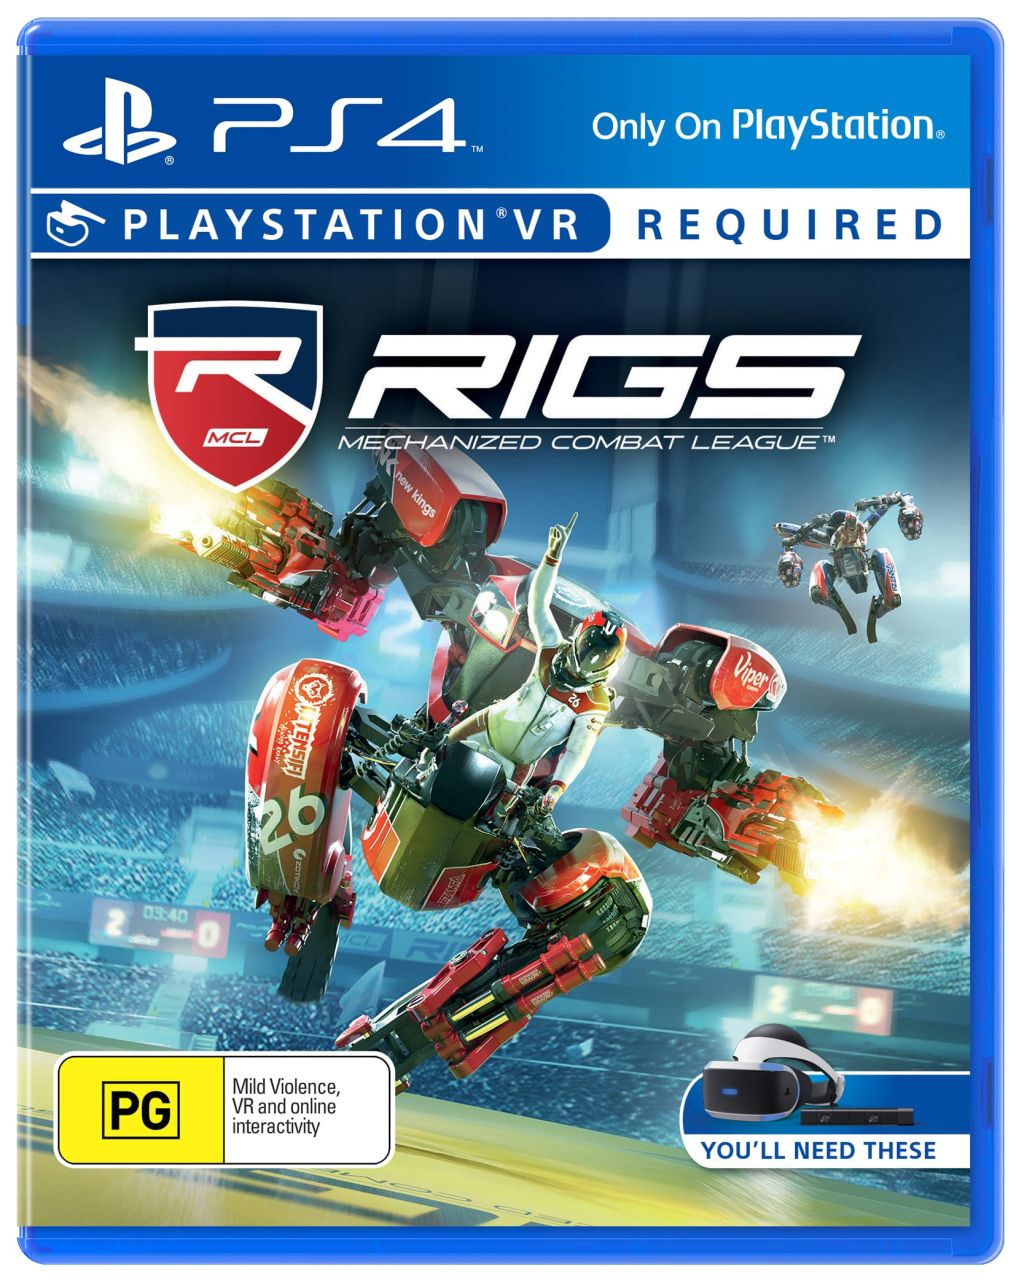 sony-ps4-playstation-vr-rigs-mechanized-combat-league-game-9860754